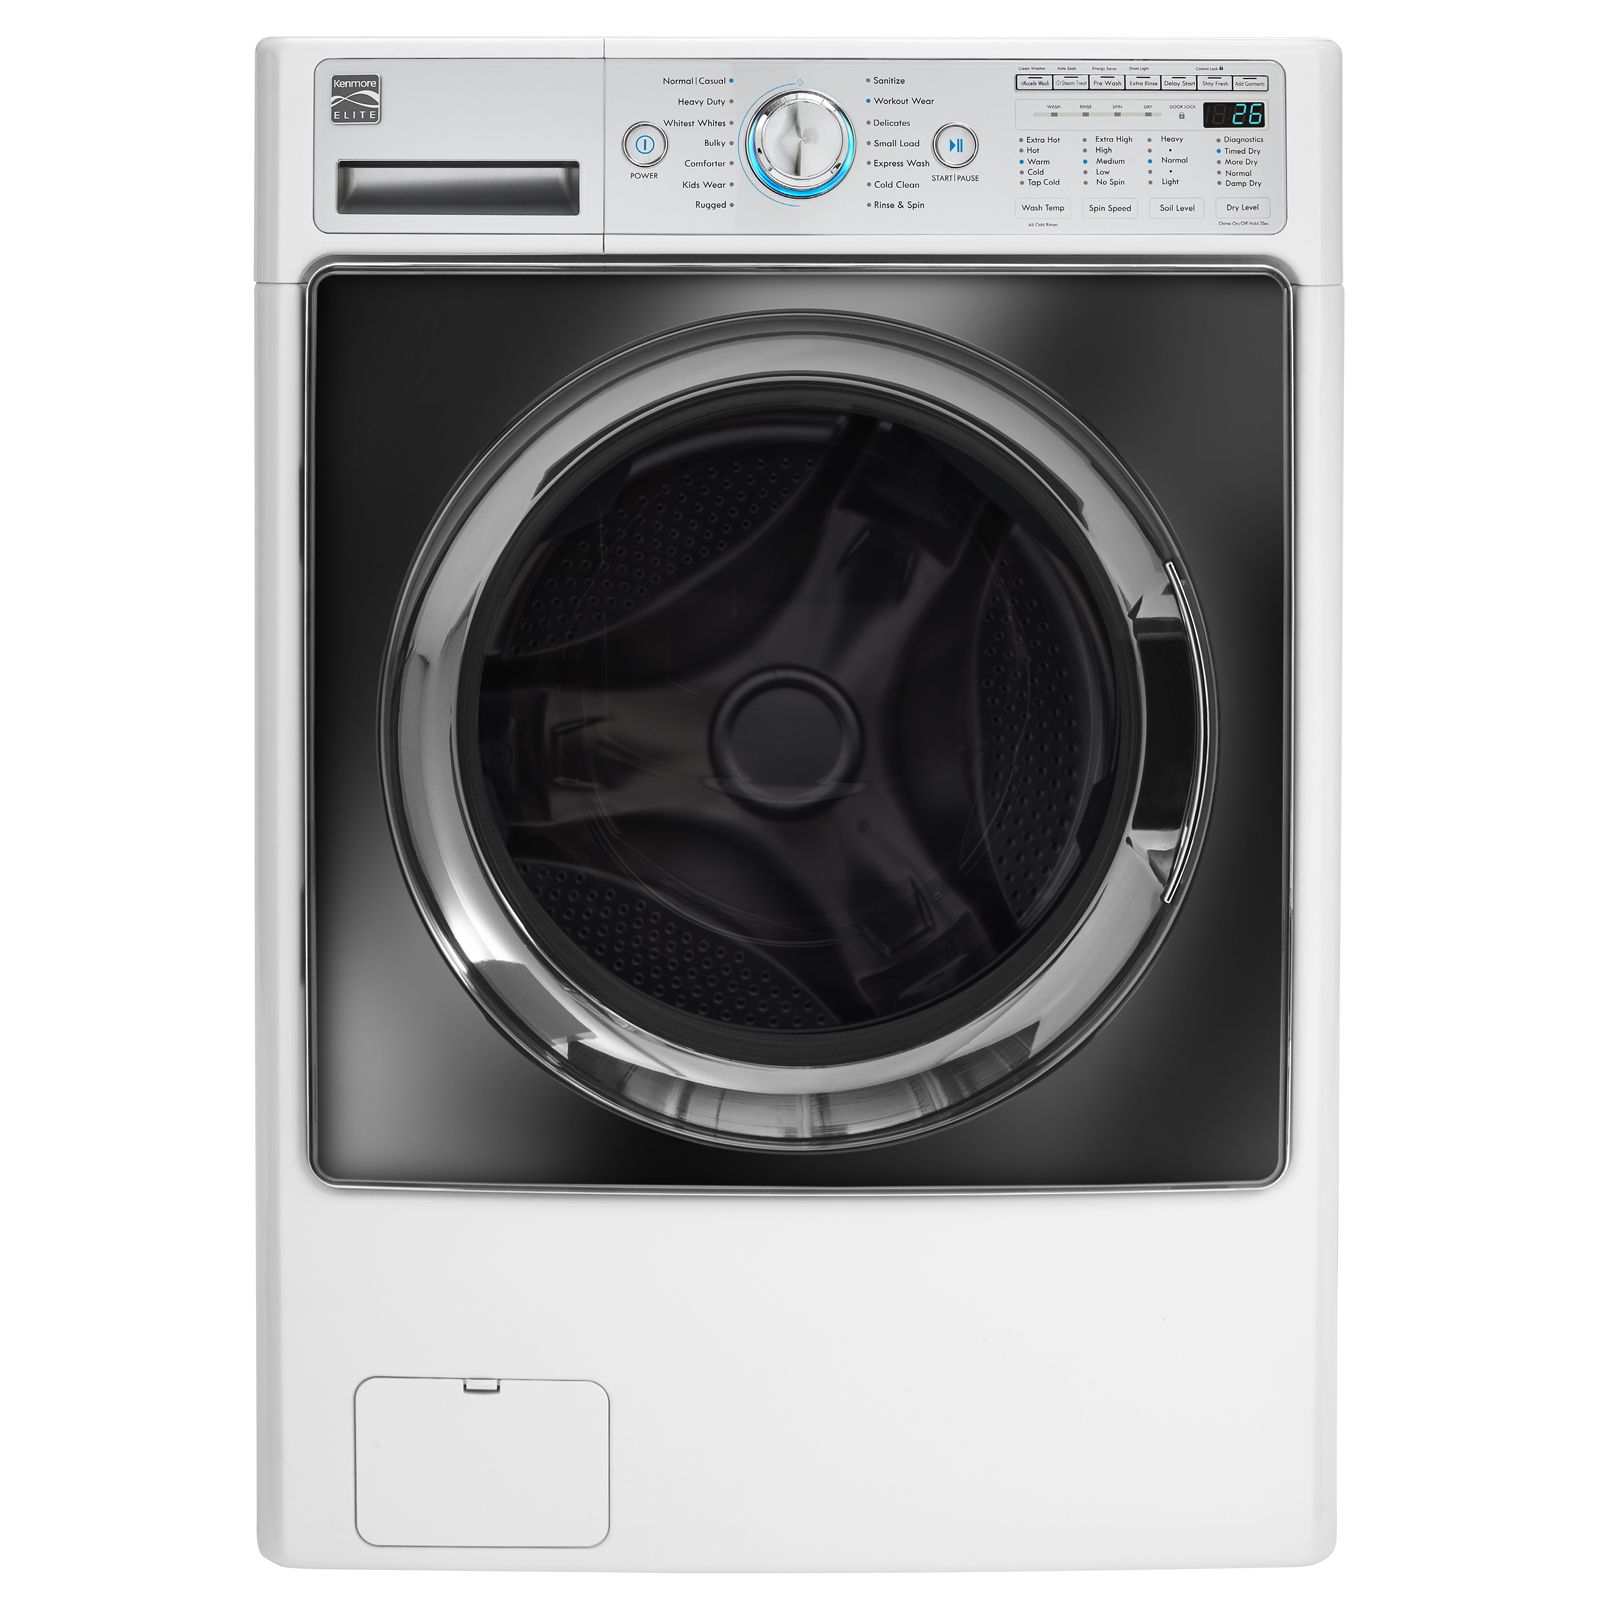 1299 99 Kenmore Elite 41002 Washer And Dryer Combo The Best Wash And Dry In One Machine Combination Washer Dryer